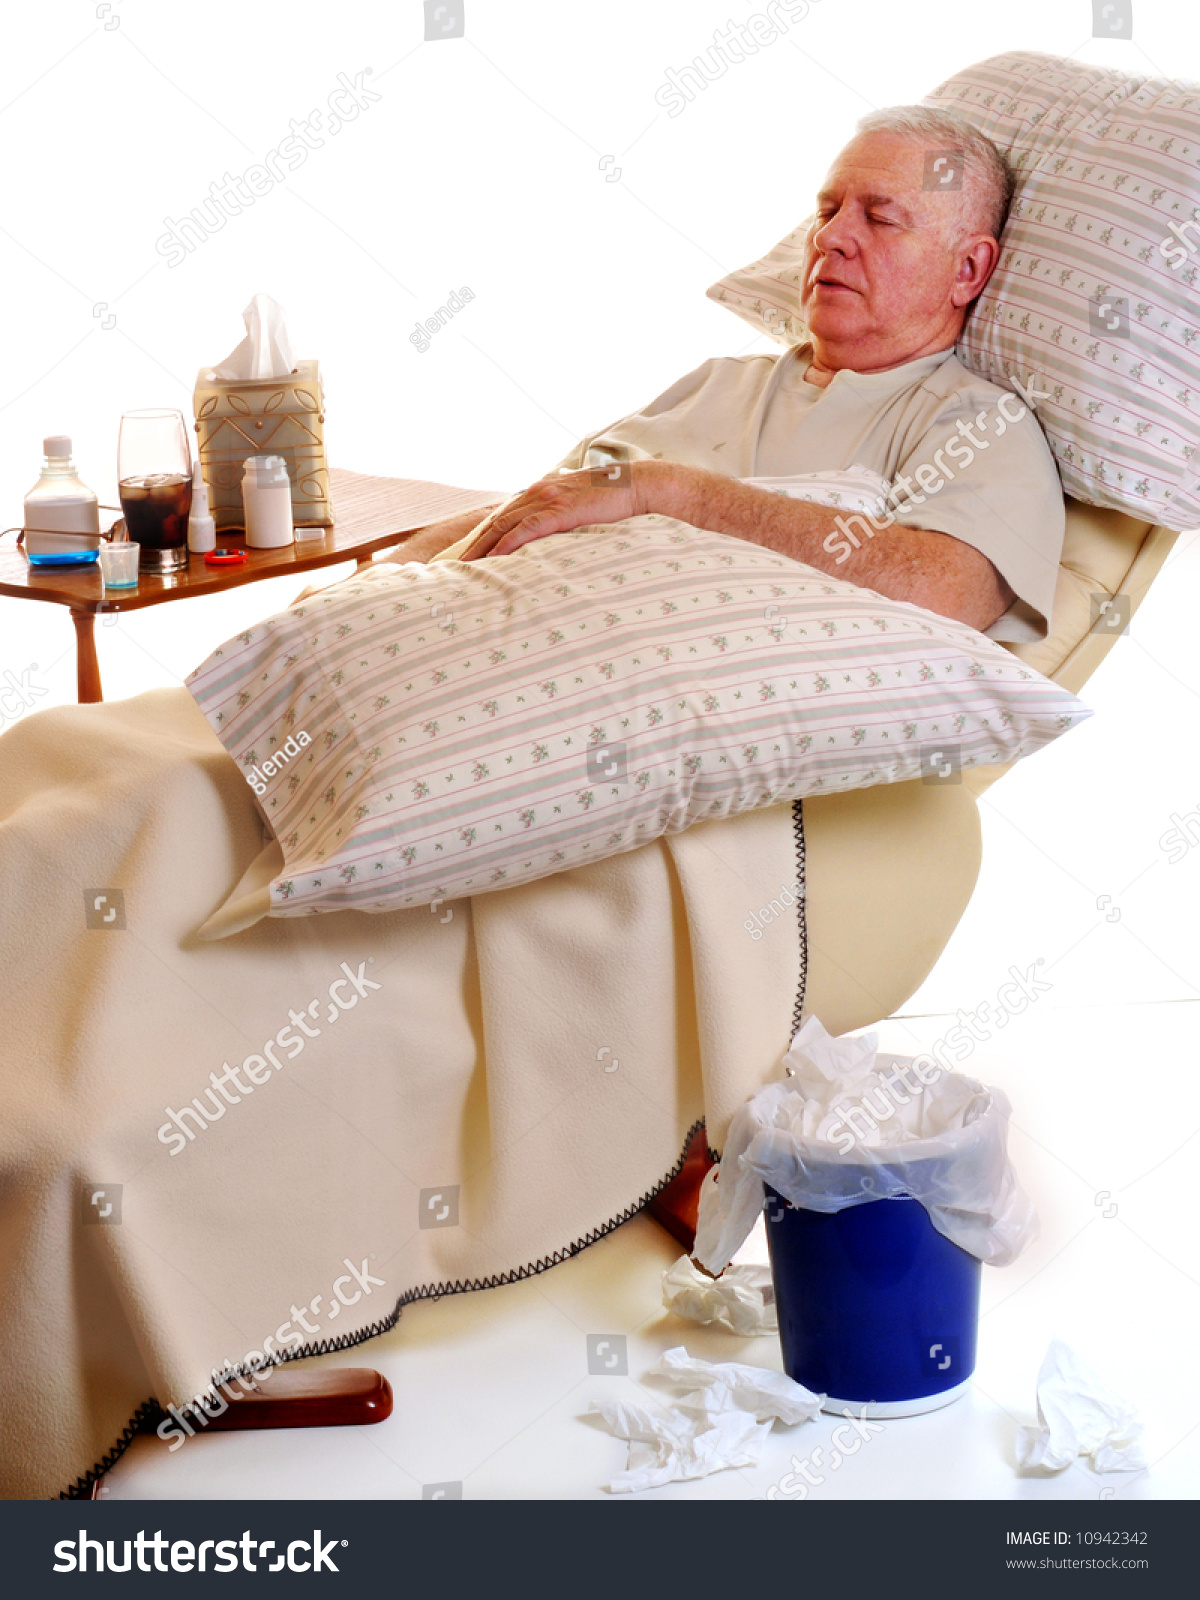 Senior man sick with a cold or flu resting in a recliner while surrounded by  sc 1 st  Shutterstock & Senior Man Sick Cold Flu Resting Stock Photo 10942342 - Shutterstock islam-shia.org